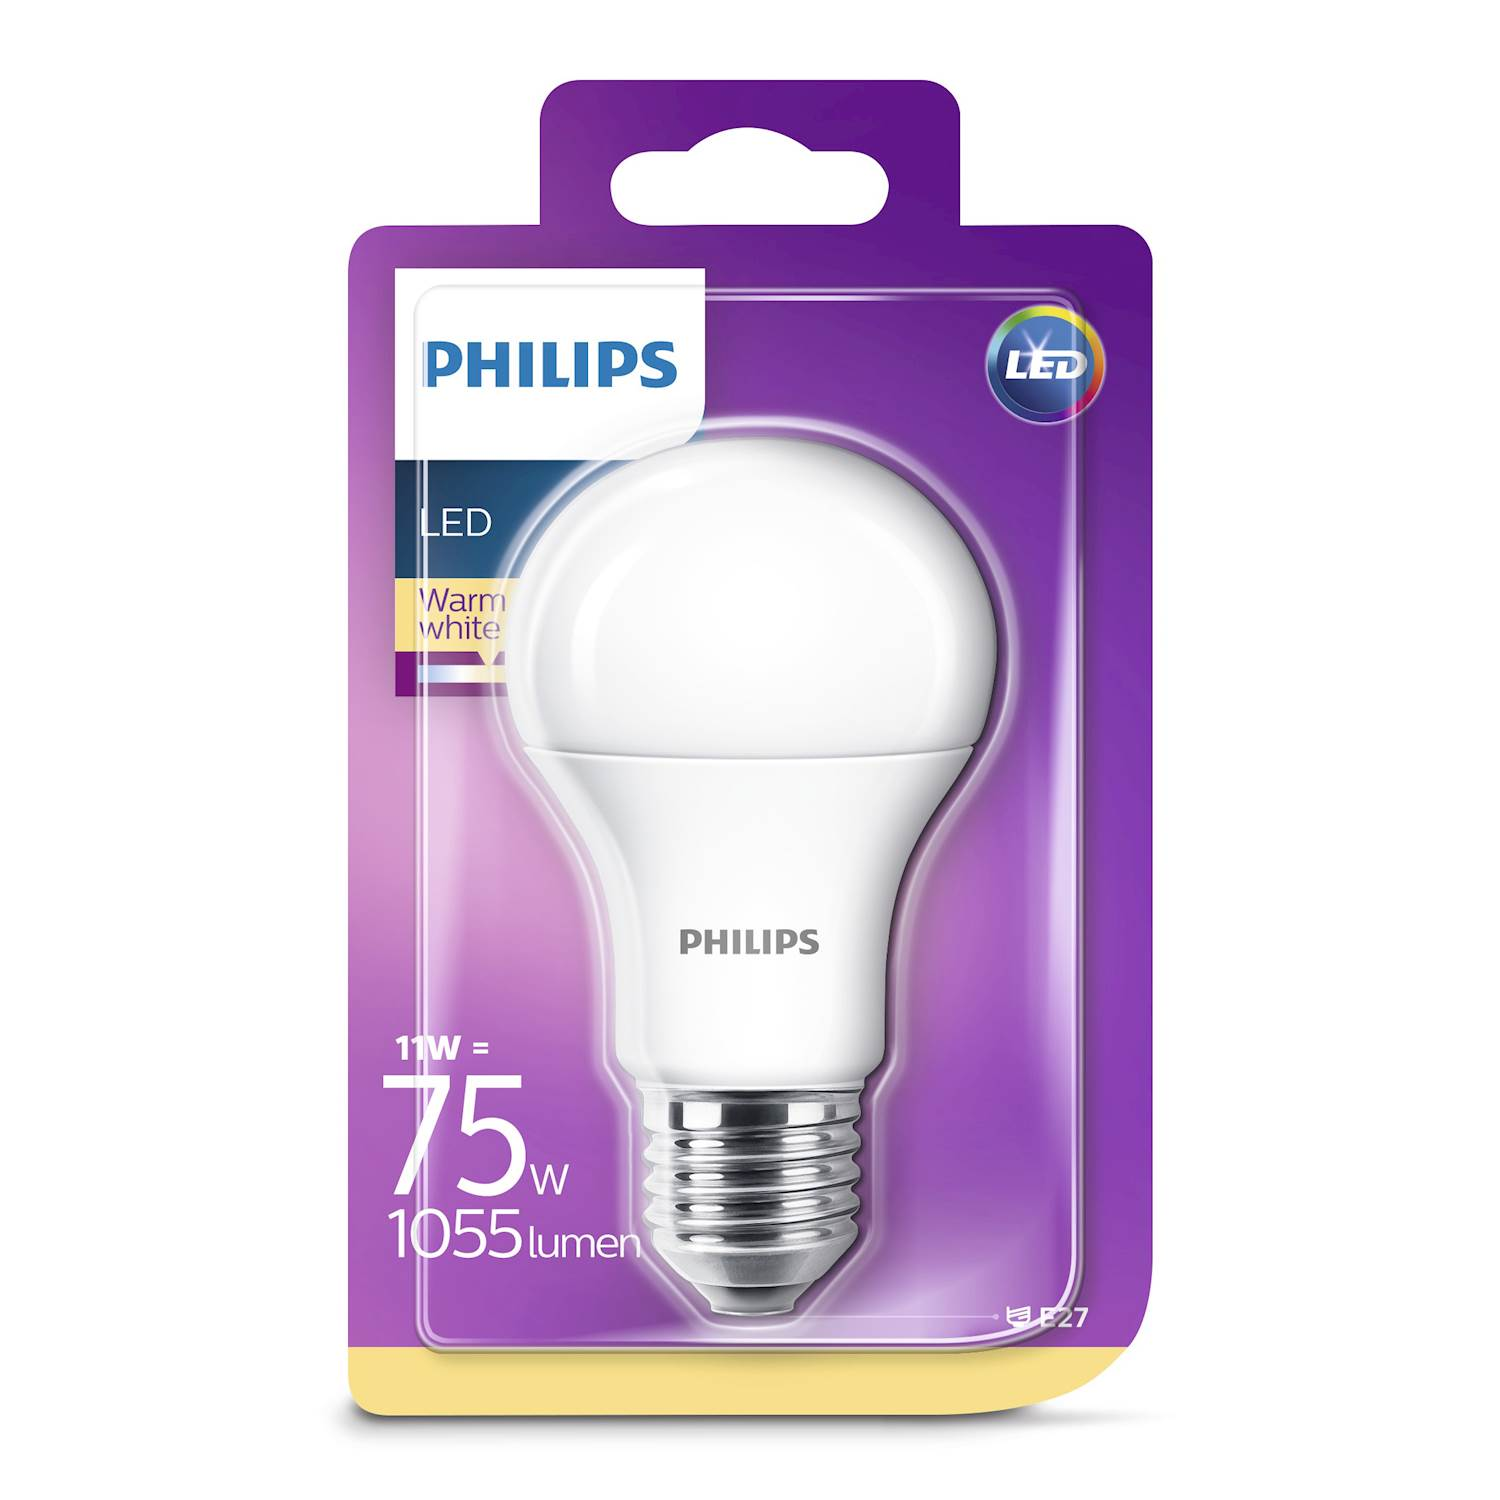 Philips LED NORMAL 11W E27 VV FR ND